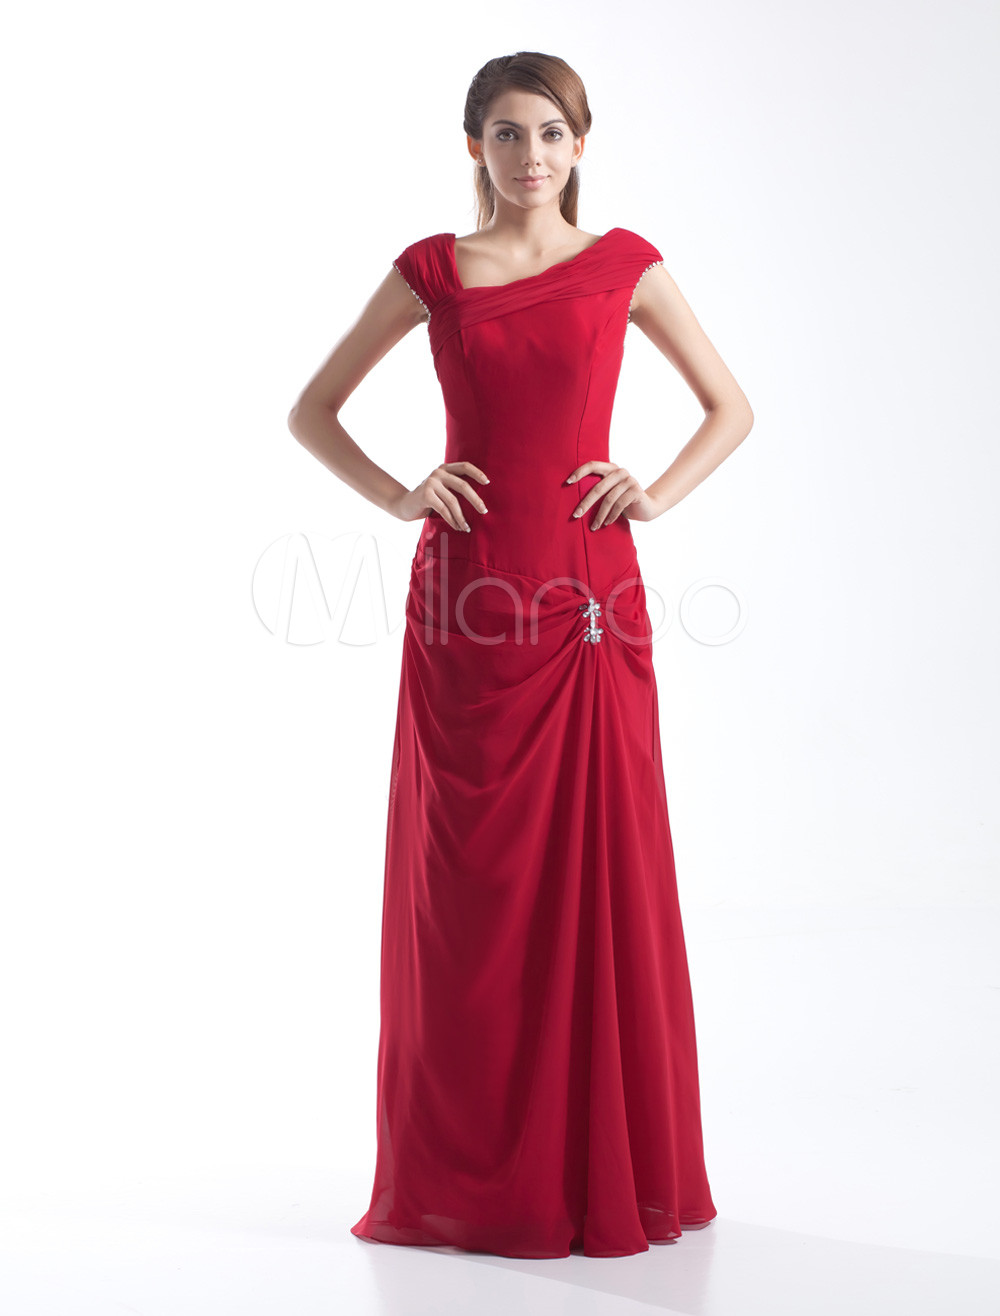 Red Cowl Neck Chiffon Floor-Length Bridesmaid Dress with Pleated